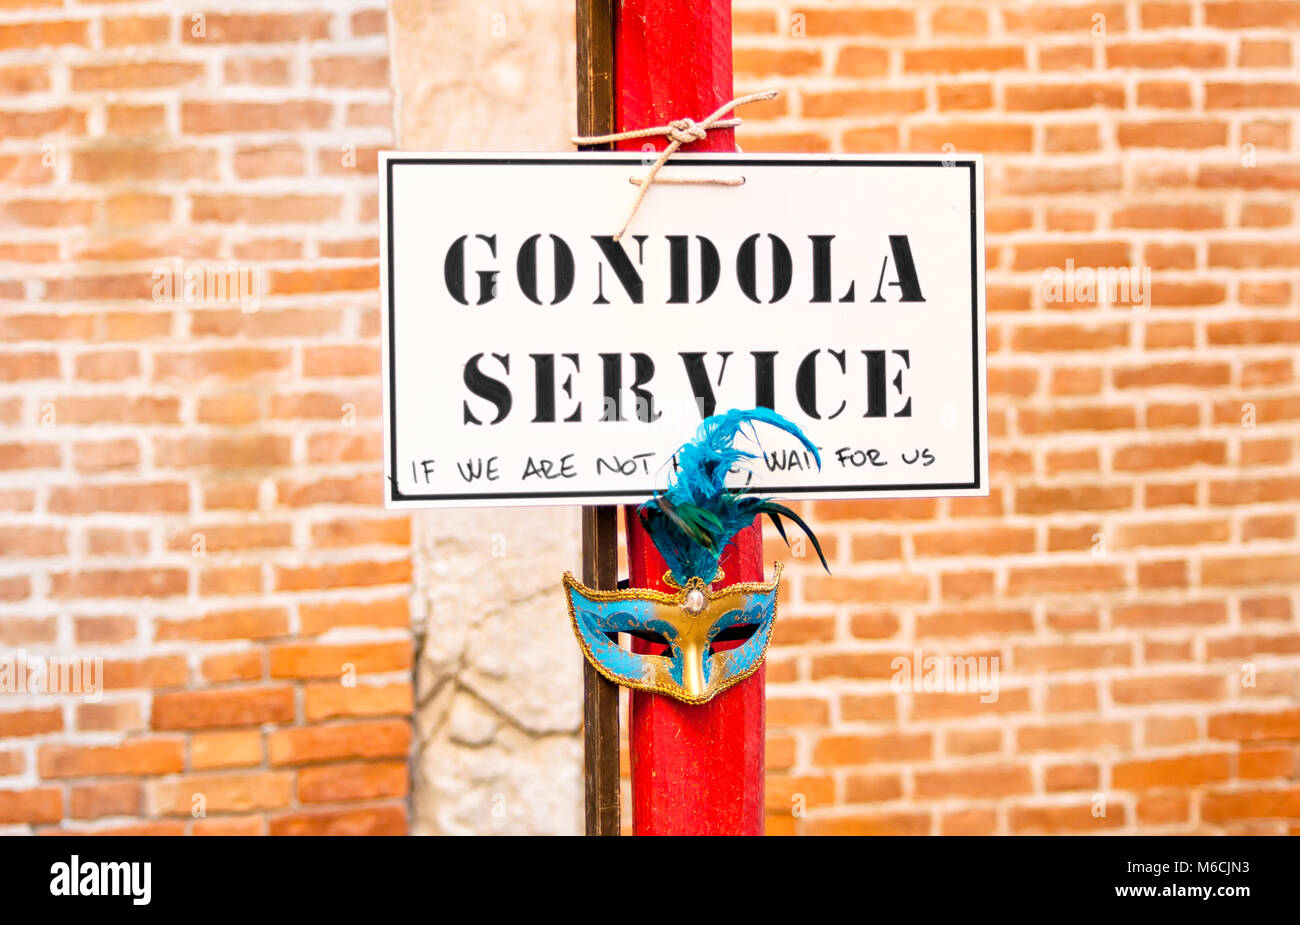 Detail of a Gondola service sign over a red pole in the Venice lagoon. The Gondola s a traditional flat-bottomed - Stock Image